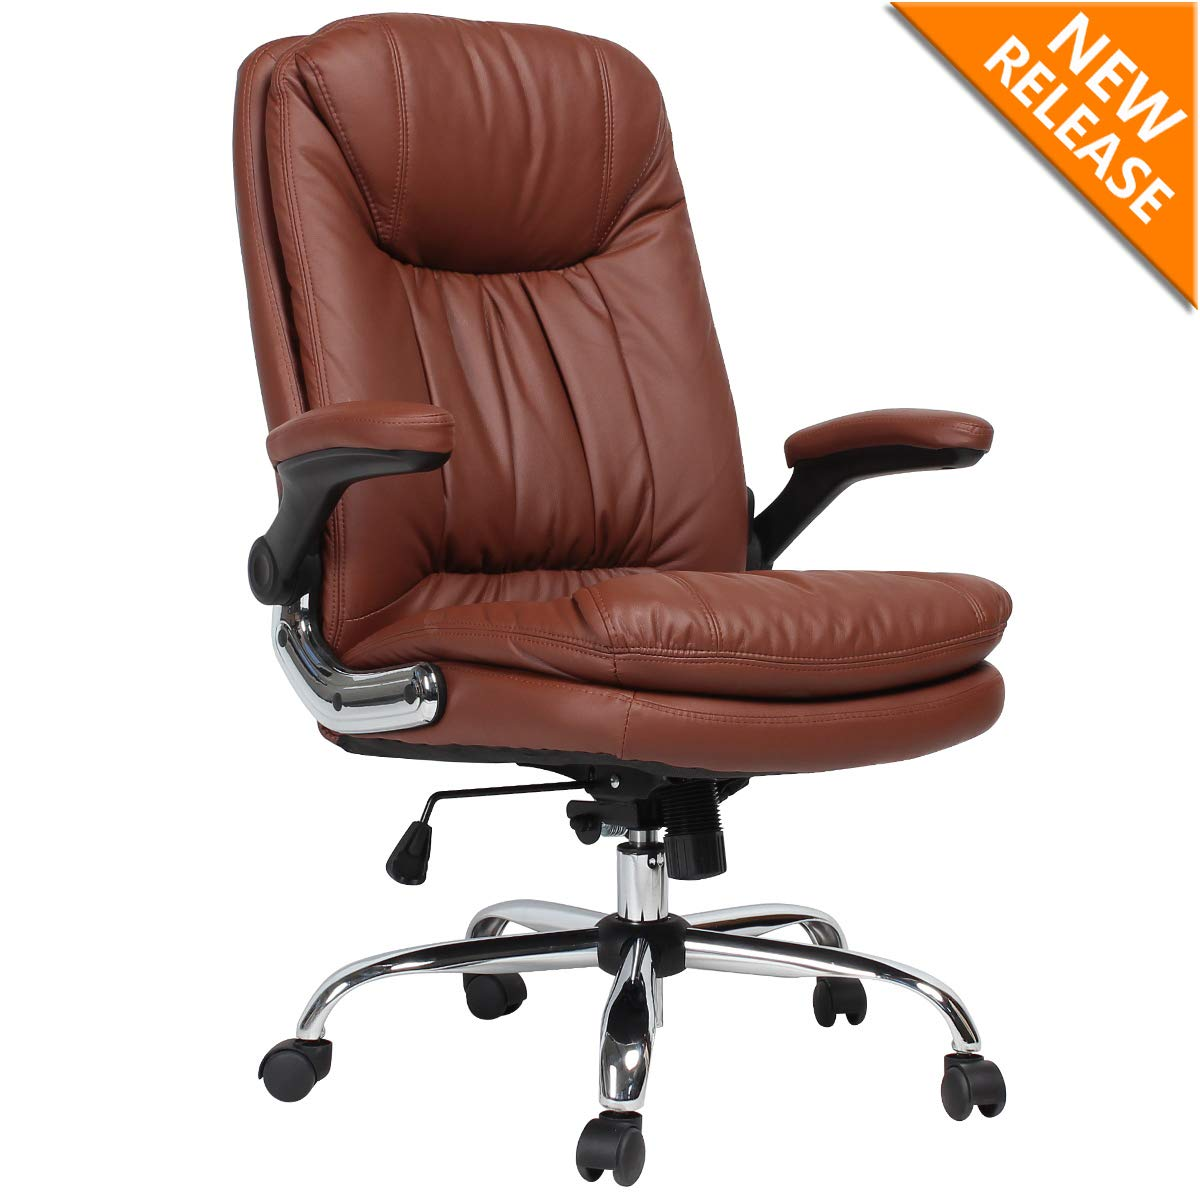 B2c2b Ergonomic Office Chair High Back Desk Chair With Flip Up Arms And Comfy Thick Cushion Leather Computer Chair Big And Tall 350lbs Brown